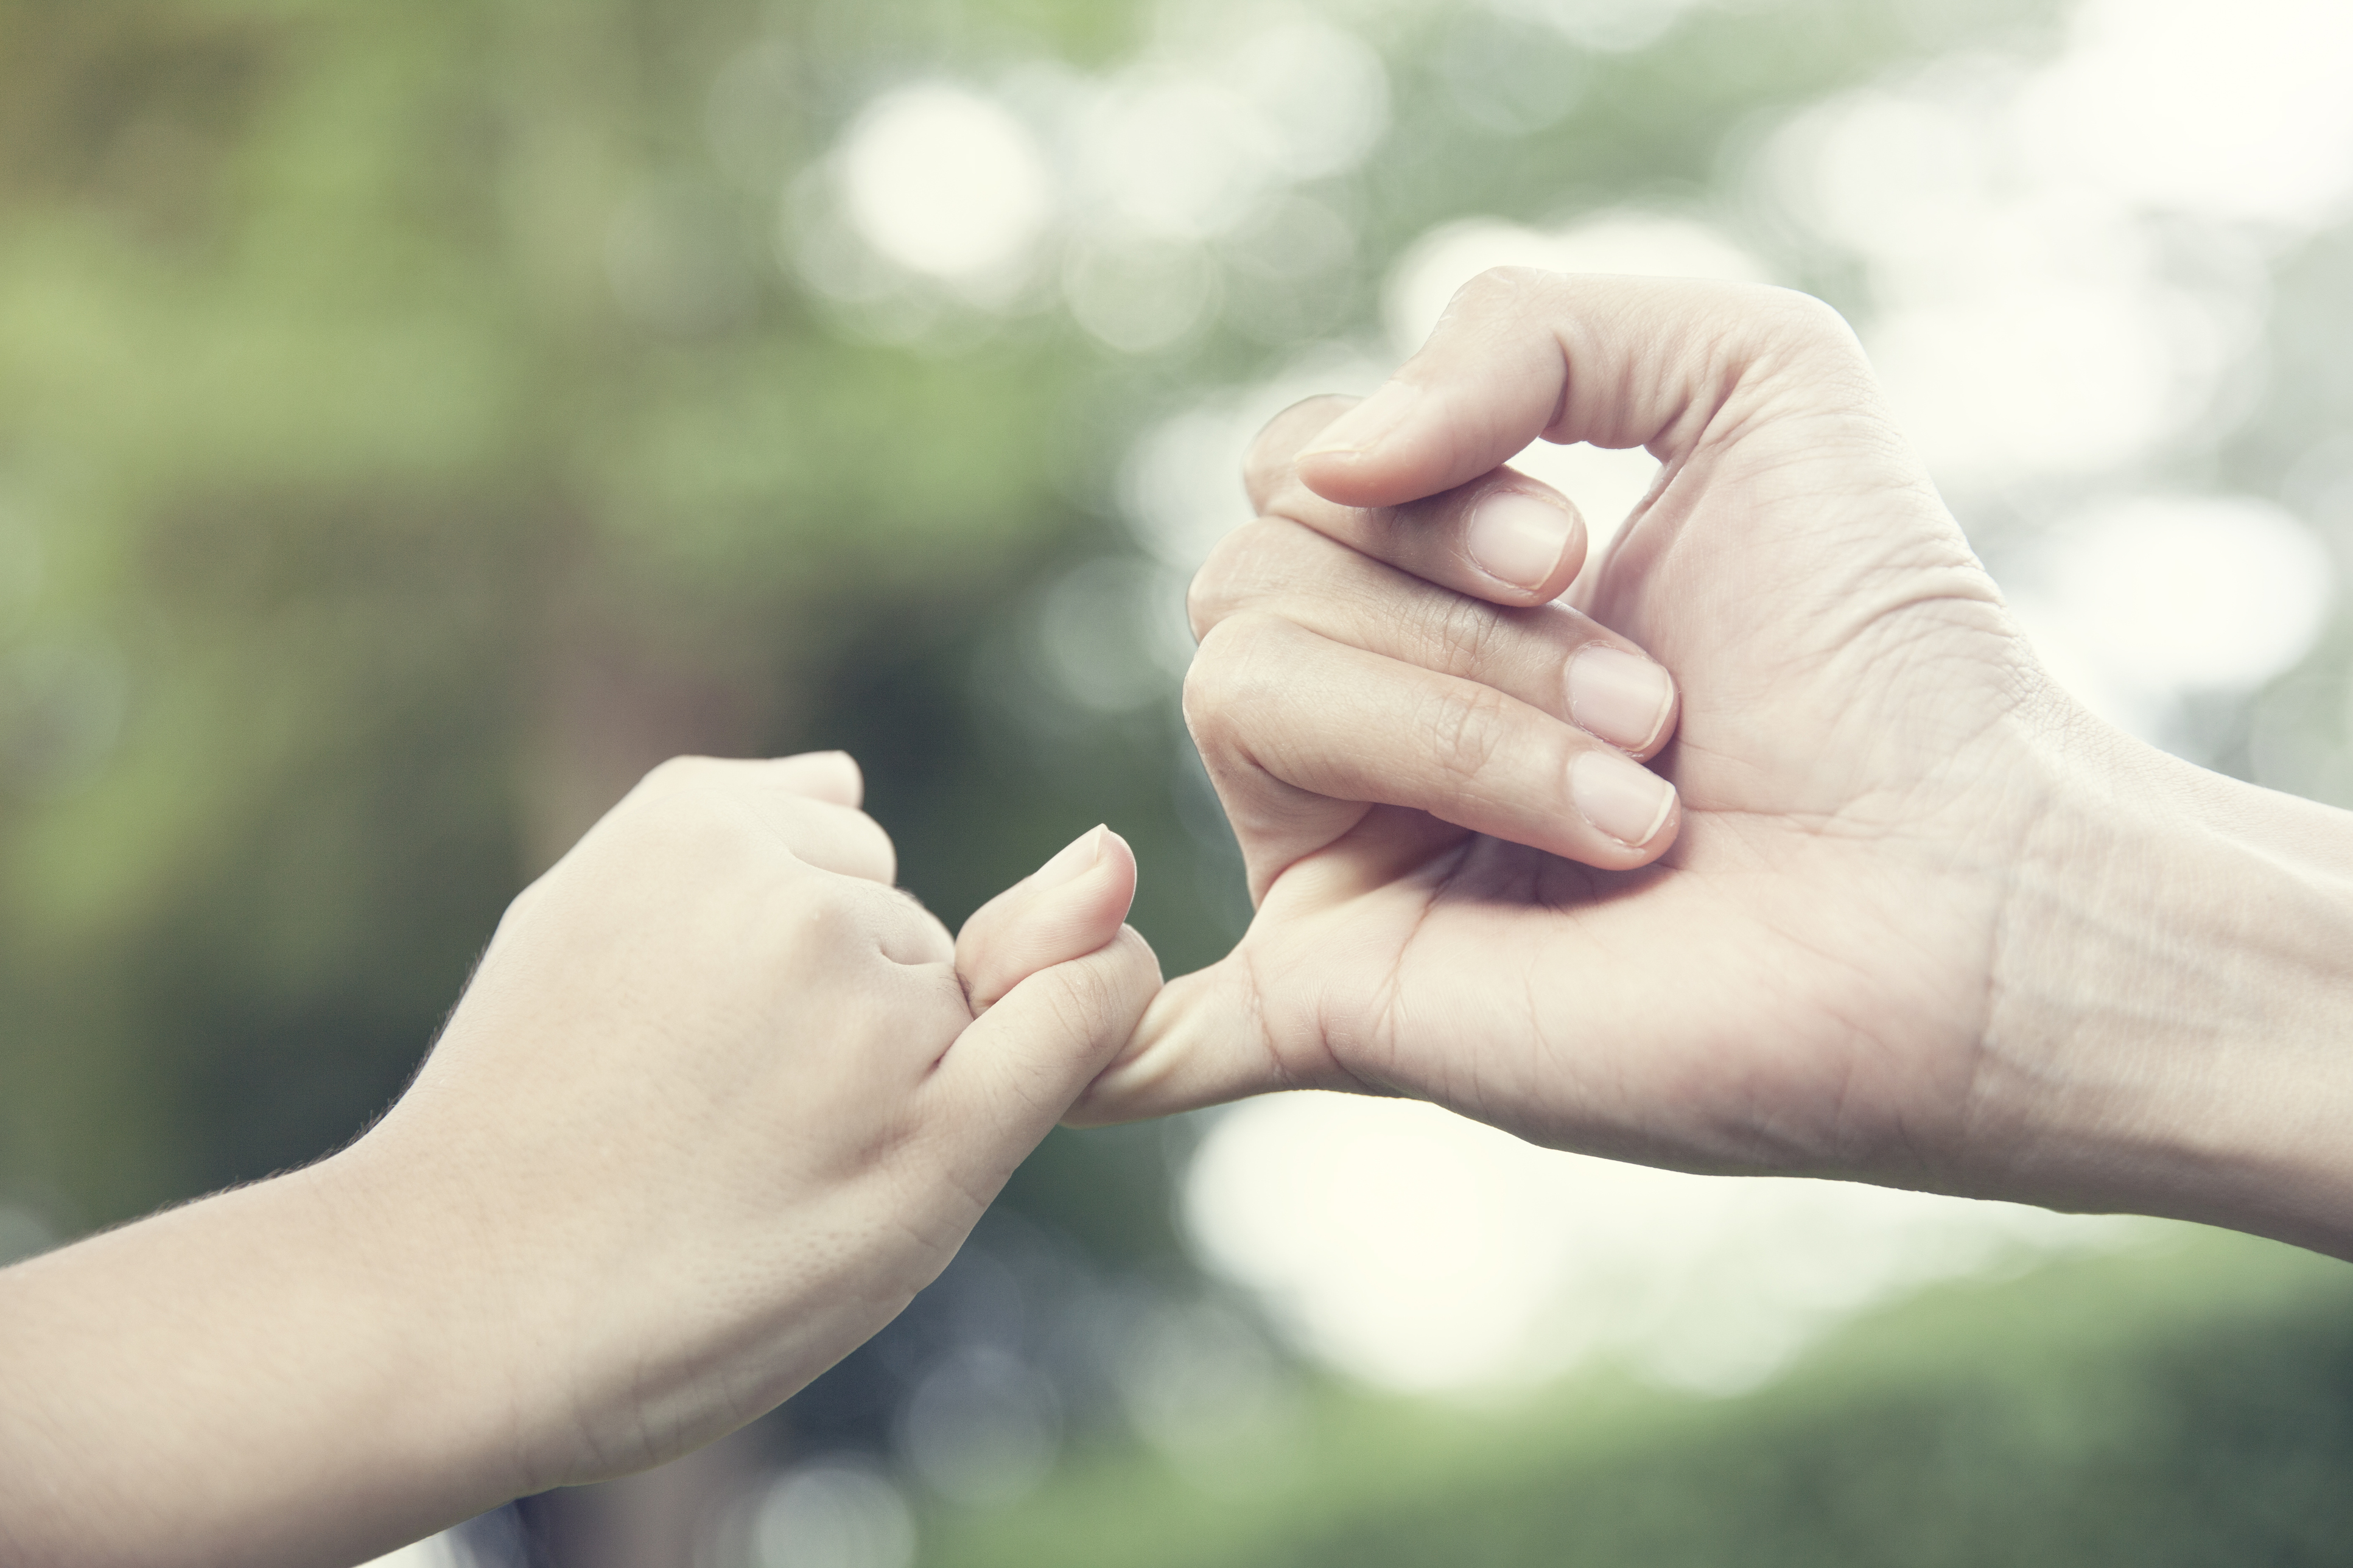 mother and her child hooking their fingers to make a promise